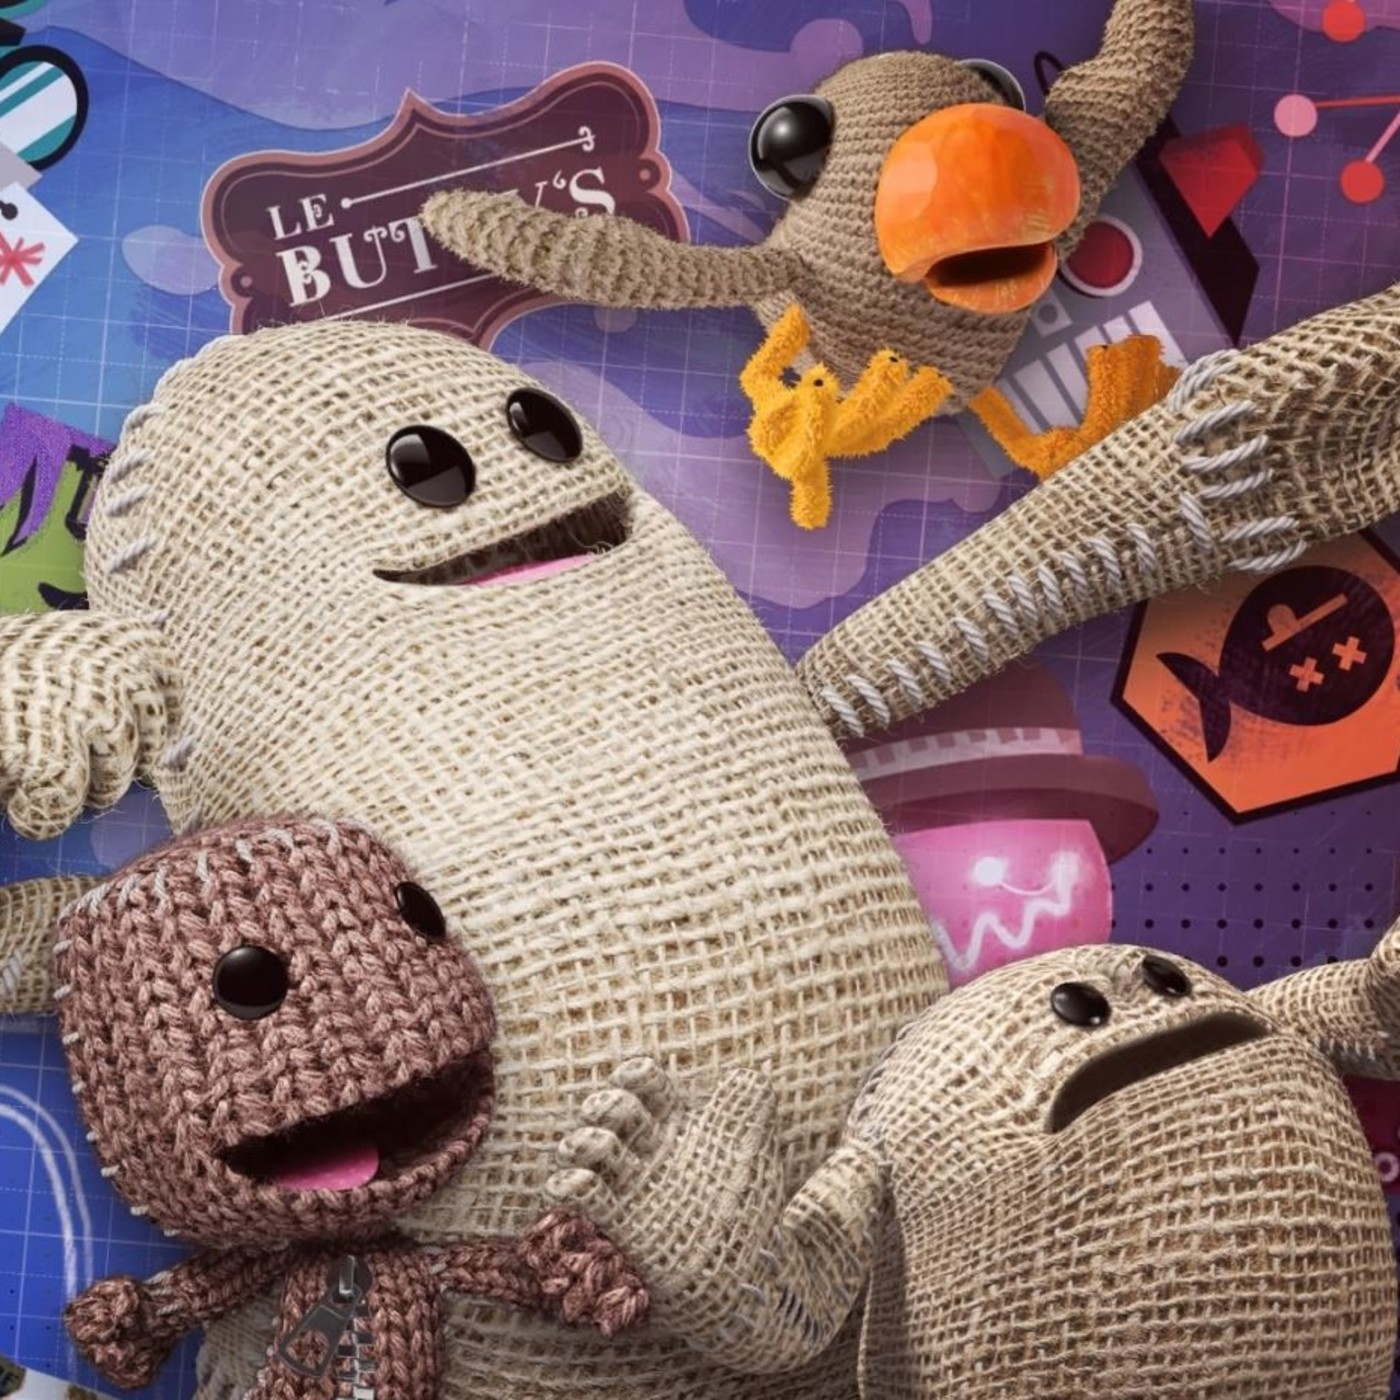 Capítulo 2: Little Big Planet 3 en Los Mundos de Elliot